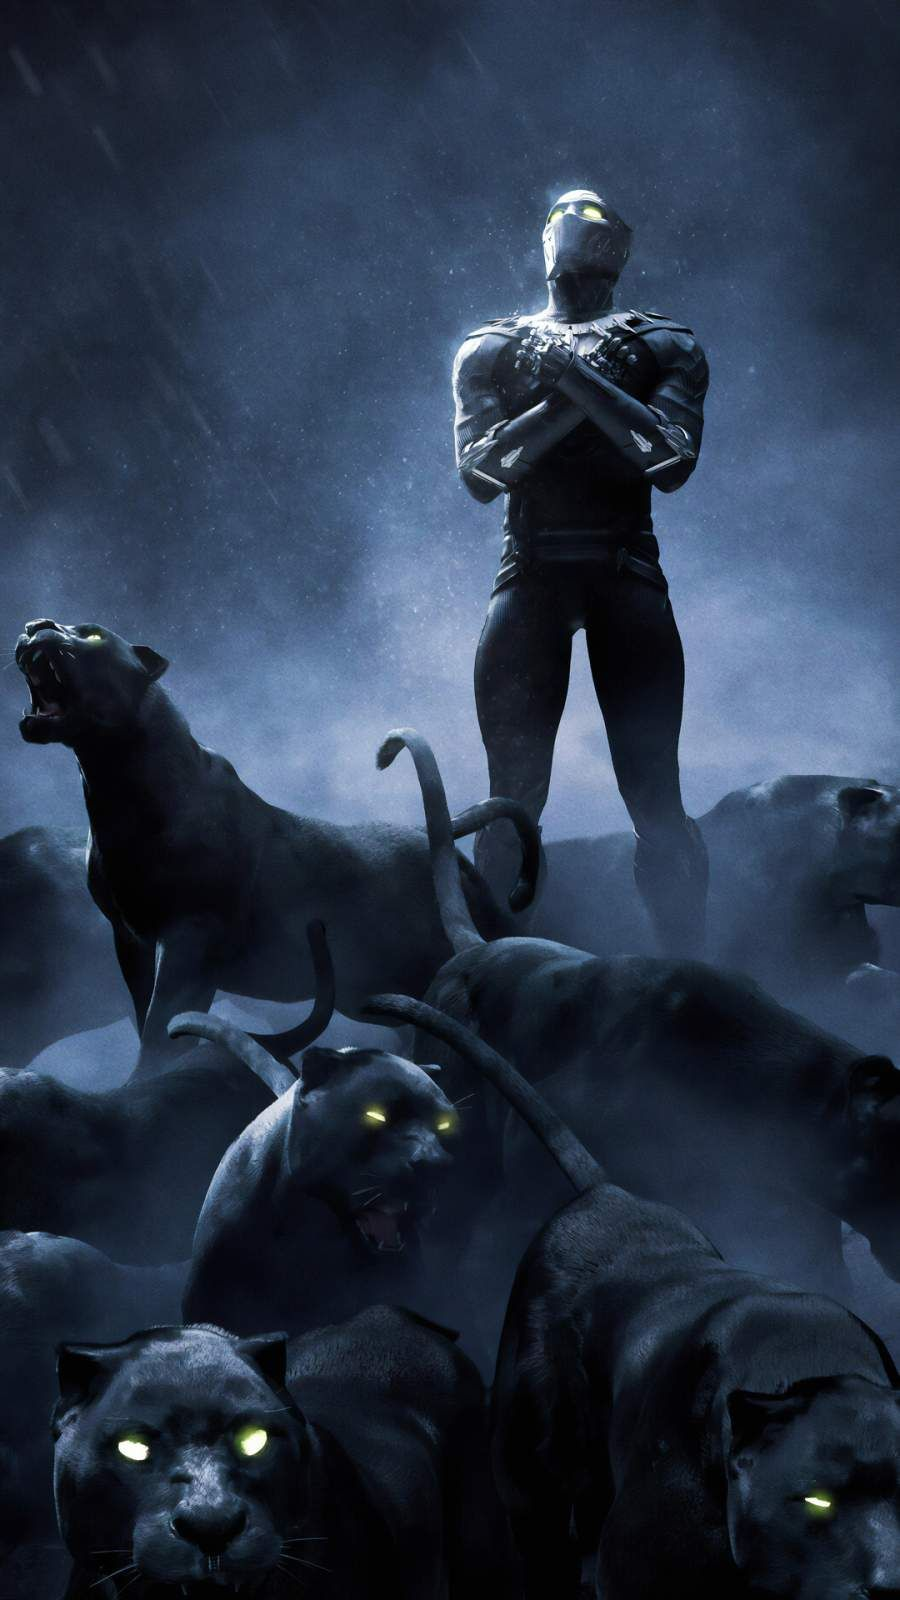 Black Panther Rise up iPhone Wallpaper from iphoneswallpapers.com